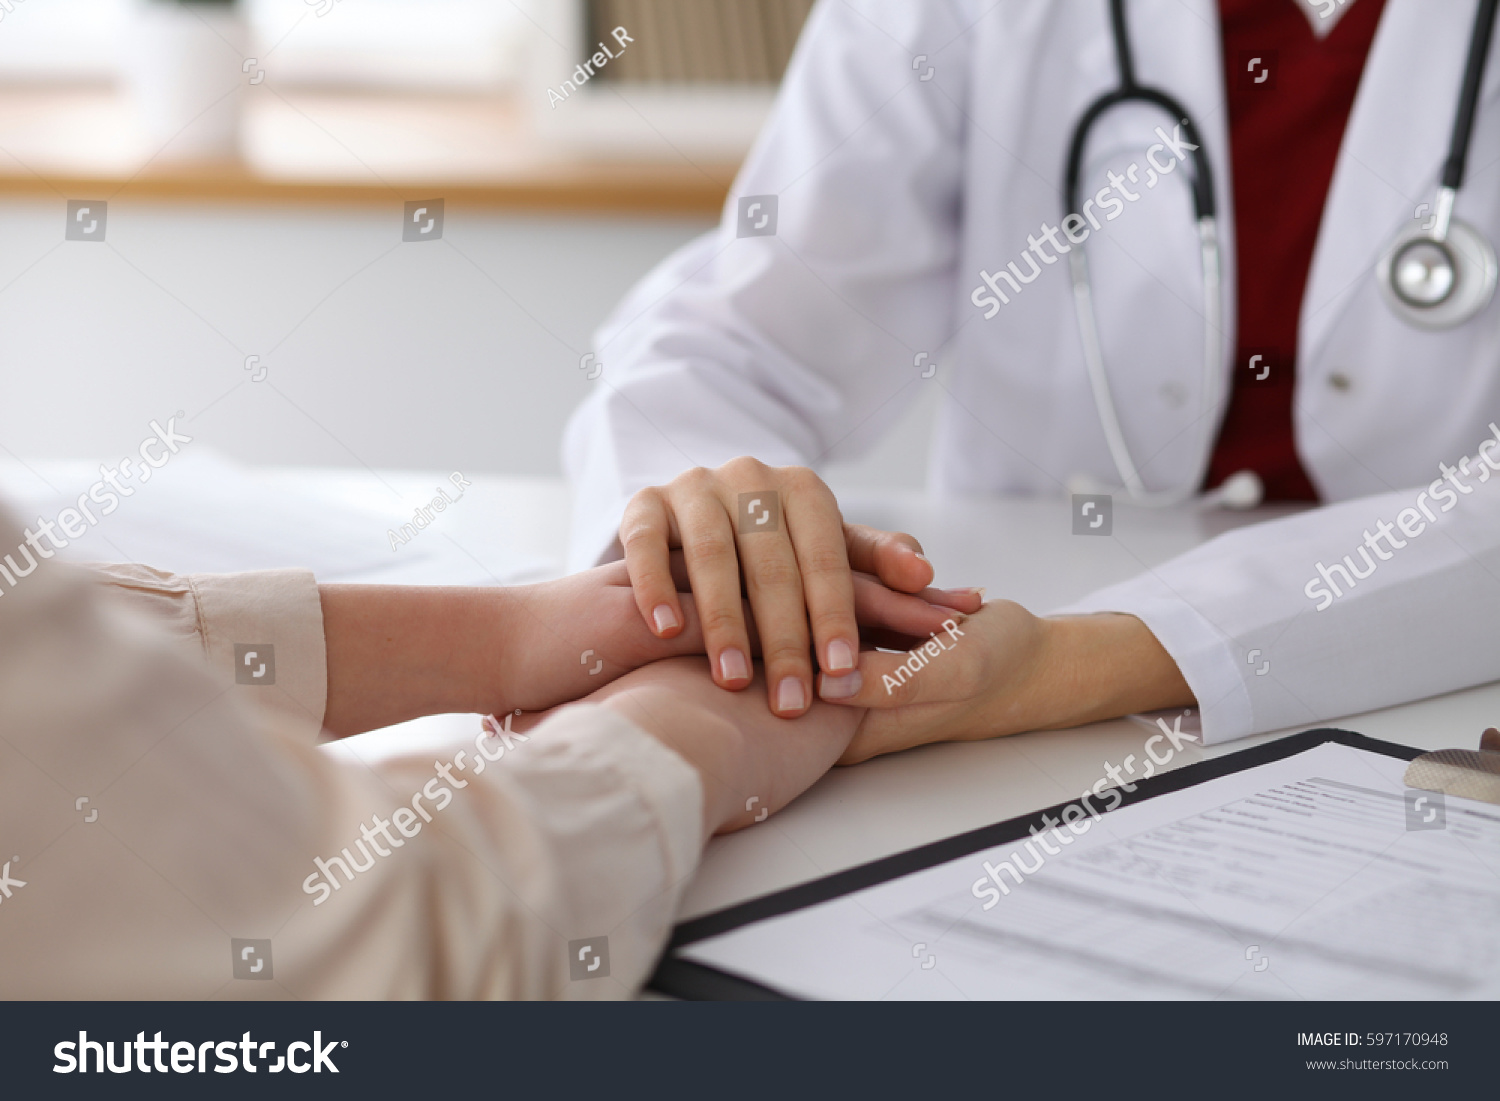 medical ethics dating patients